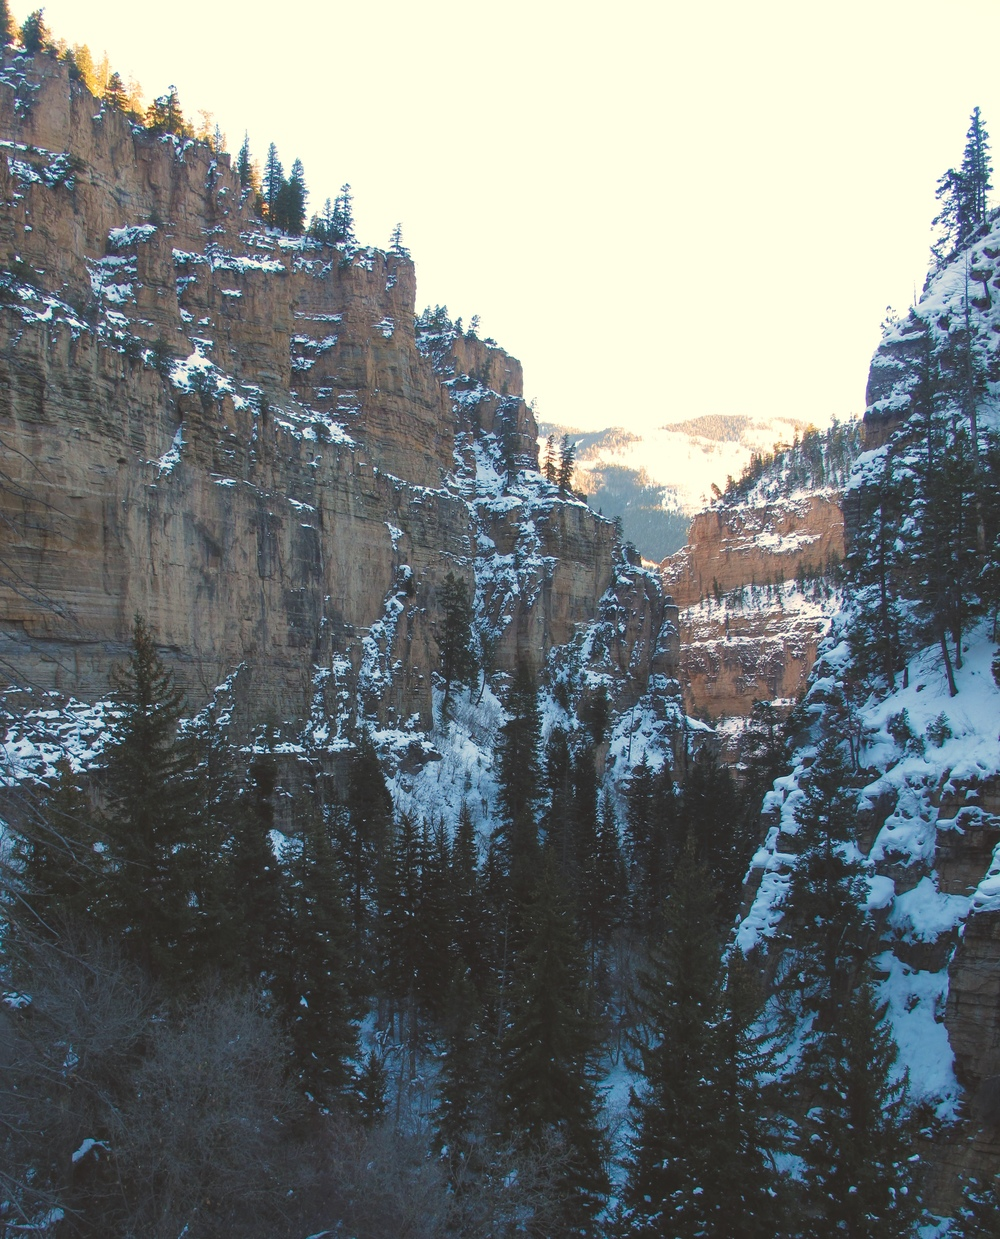 Mountains beside Hanging Lake, CO. With pine trees and snow.